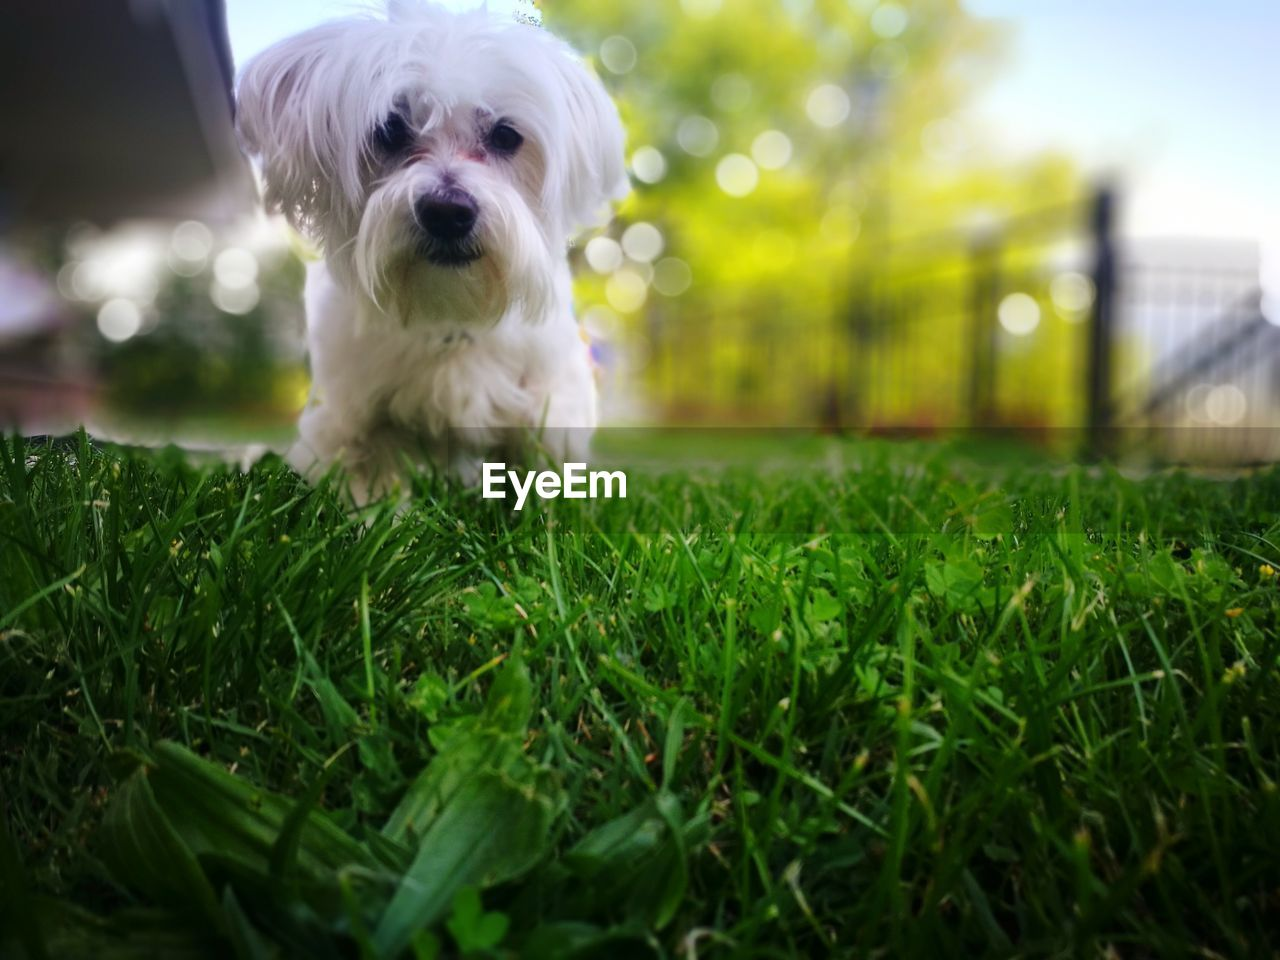 domestic, one animal, pets, canine, dog, domestic animals, mammal, animal themes, grass, animal, plant, green color, selective focus, vertebrate, no people, nature, looking at camera, field, portrait, land, outdoors, small, shih tzu, surface level